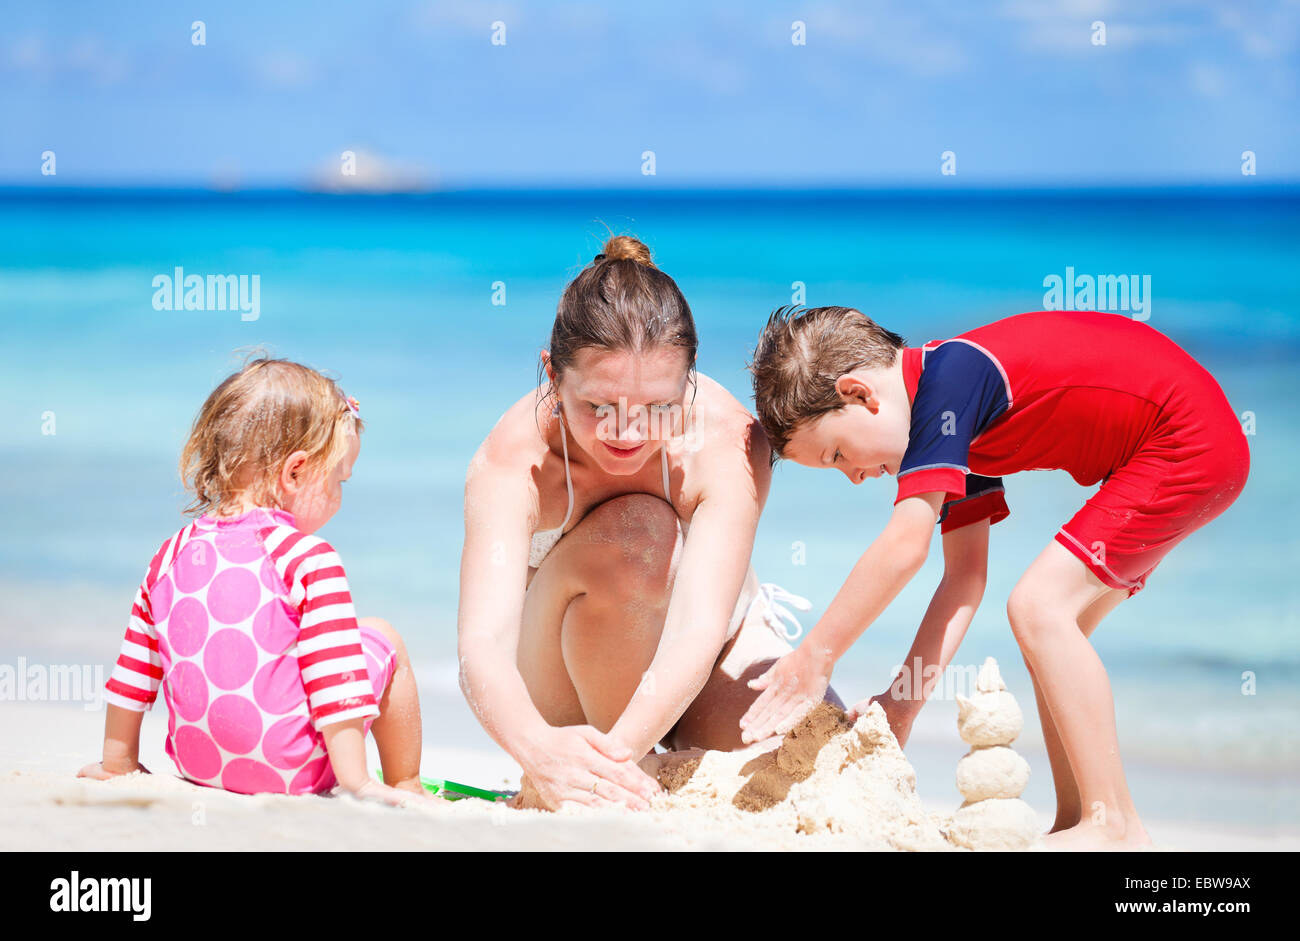 a young mother and her two children building a sand castle on sandy beach - Stock Image